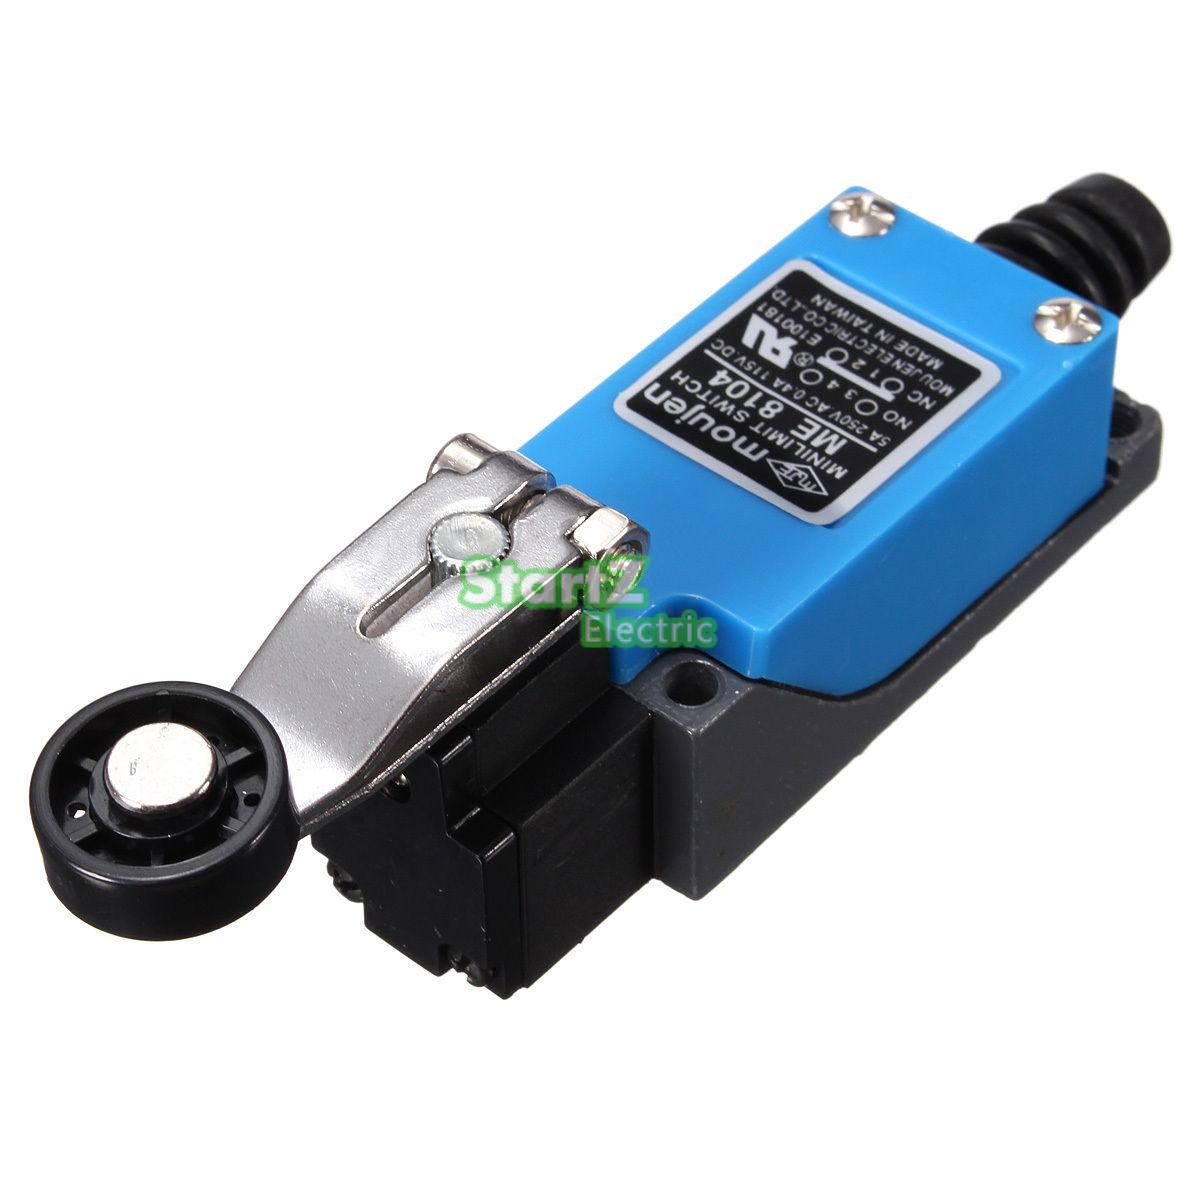 ME-8104 Rotary Plastic Roller Arm Enclosed Limit Switch Finish Maching 660v ui 10a ith 8 terminals rotary cam universal changeover combination switch